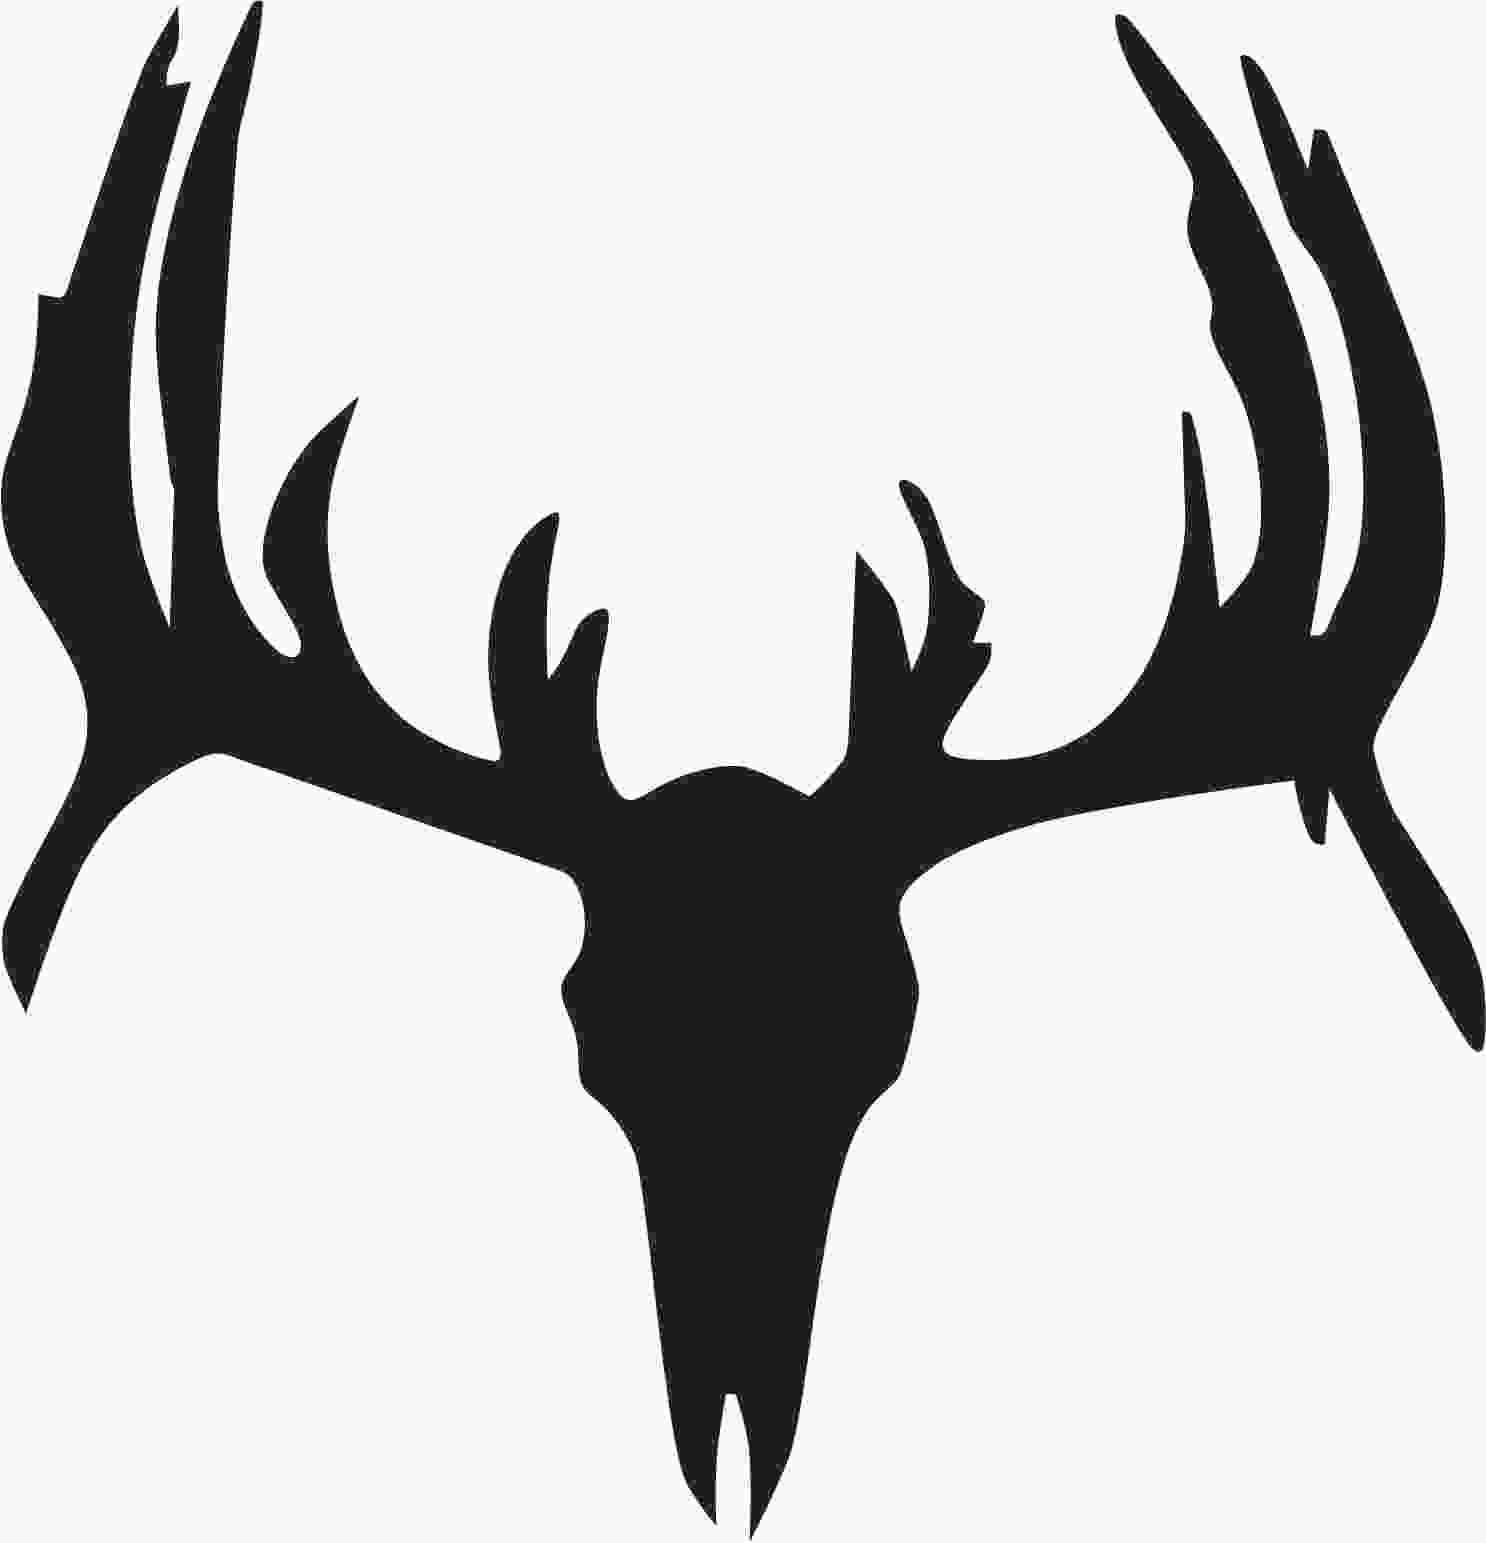 Deer skull clipart graphic transparent library Free Deer Skull Clipart, Download Free Clip Art, Free Clip ... graphic transparent library